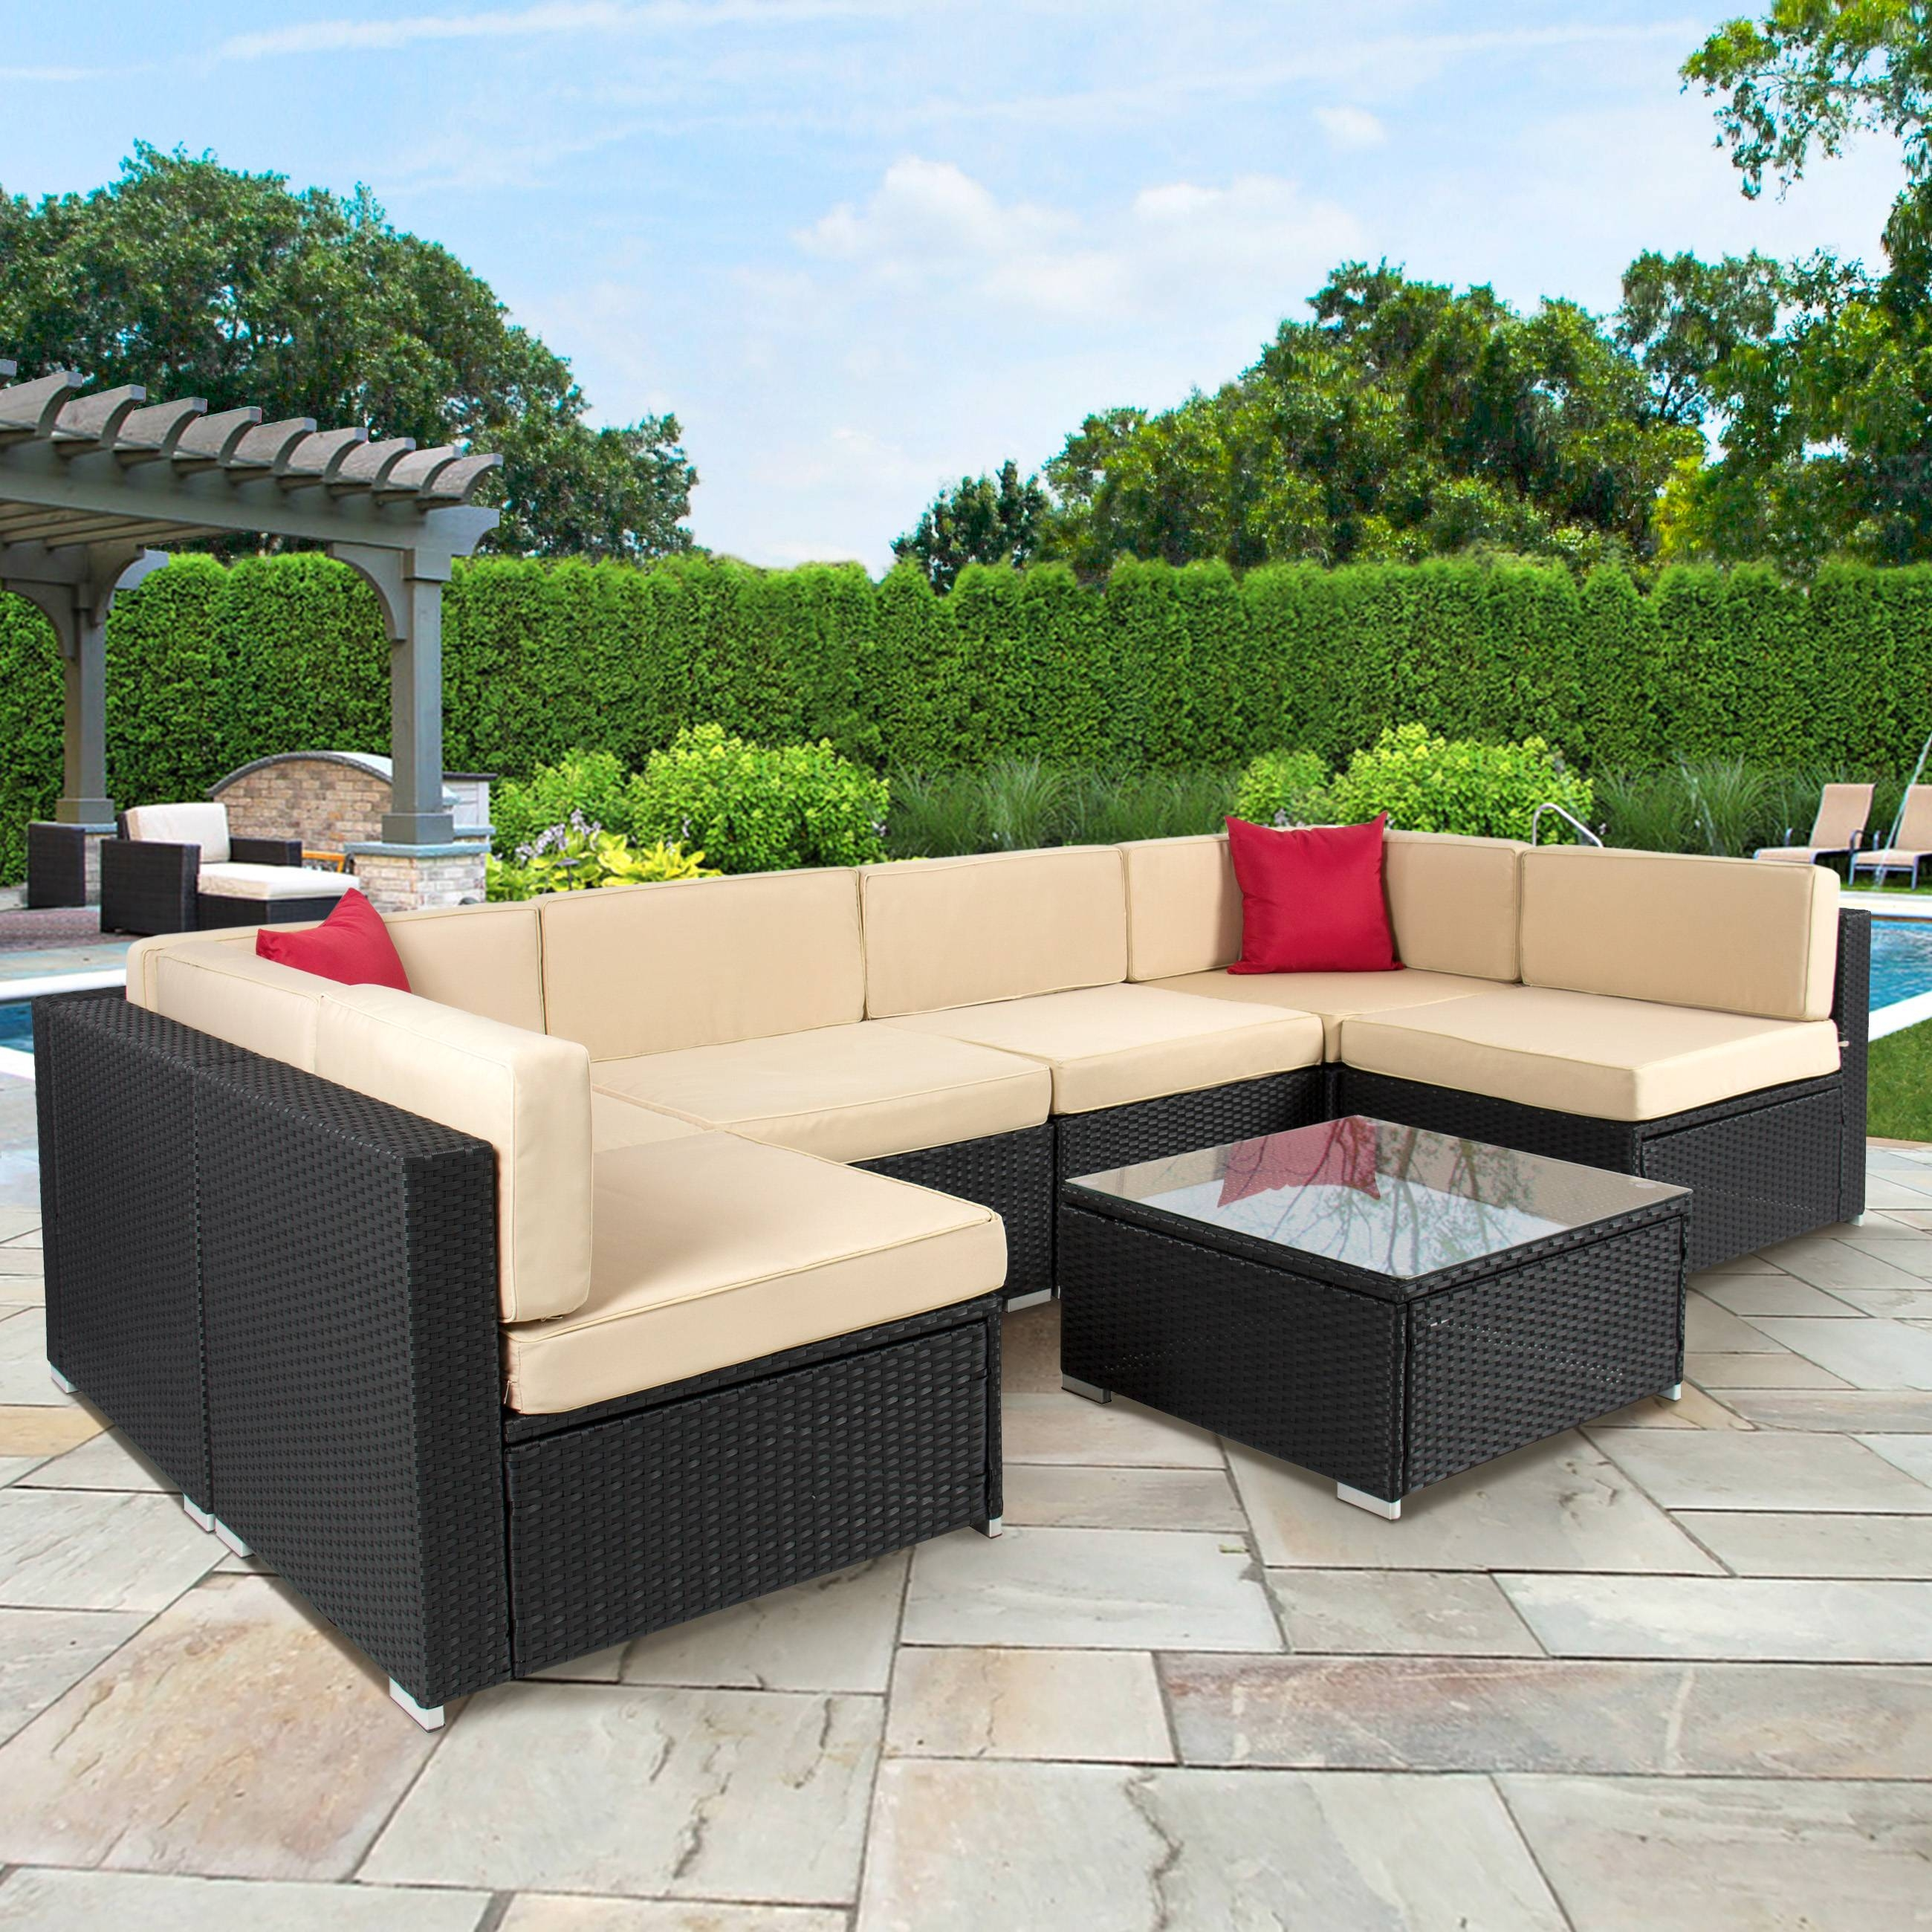 4Pc Outdoor Patio Garden Furniture Wicker Rattan Sofa Set Black within Outdoor Sofa Chairs (Image 1 of 30)